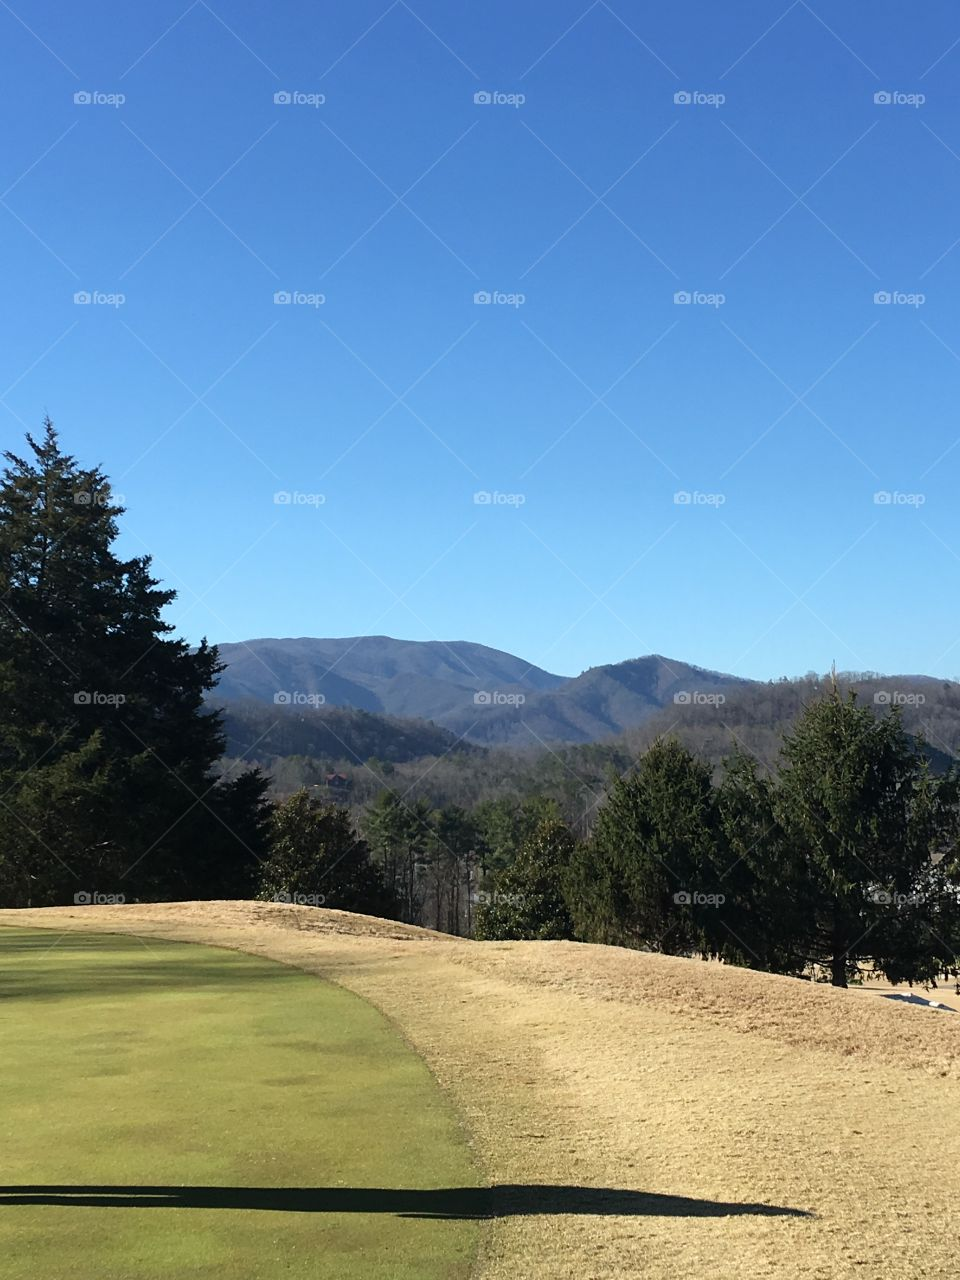 Golfing in the smoky's